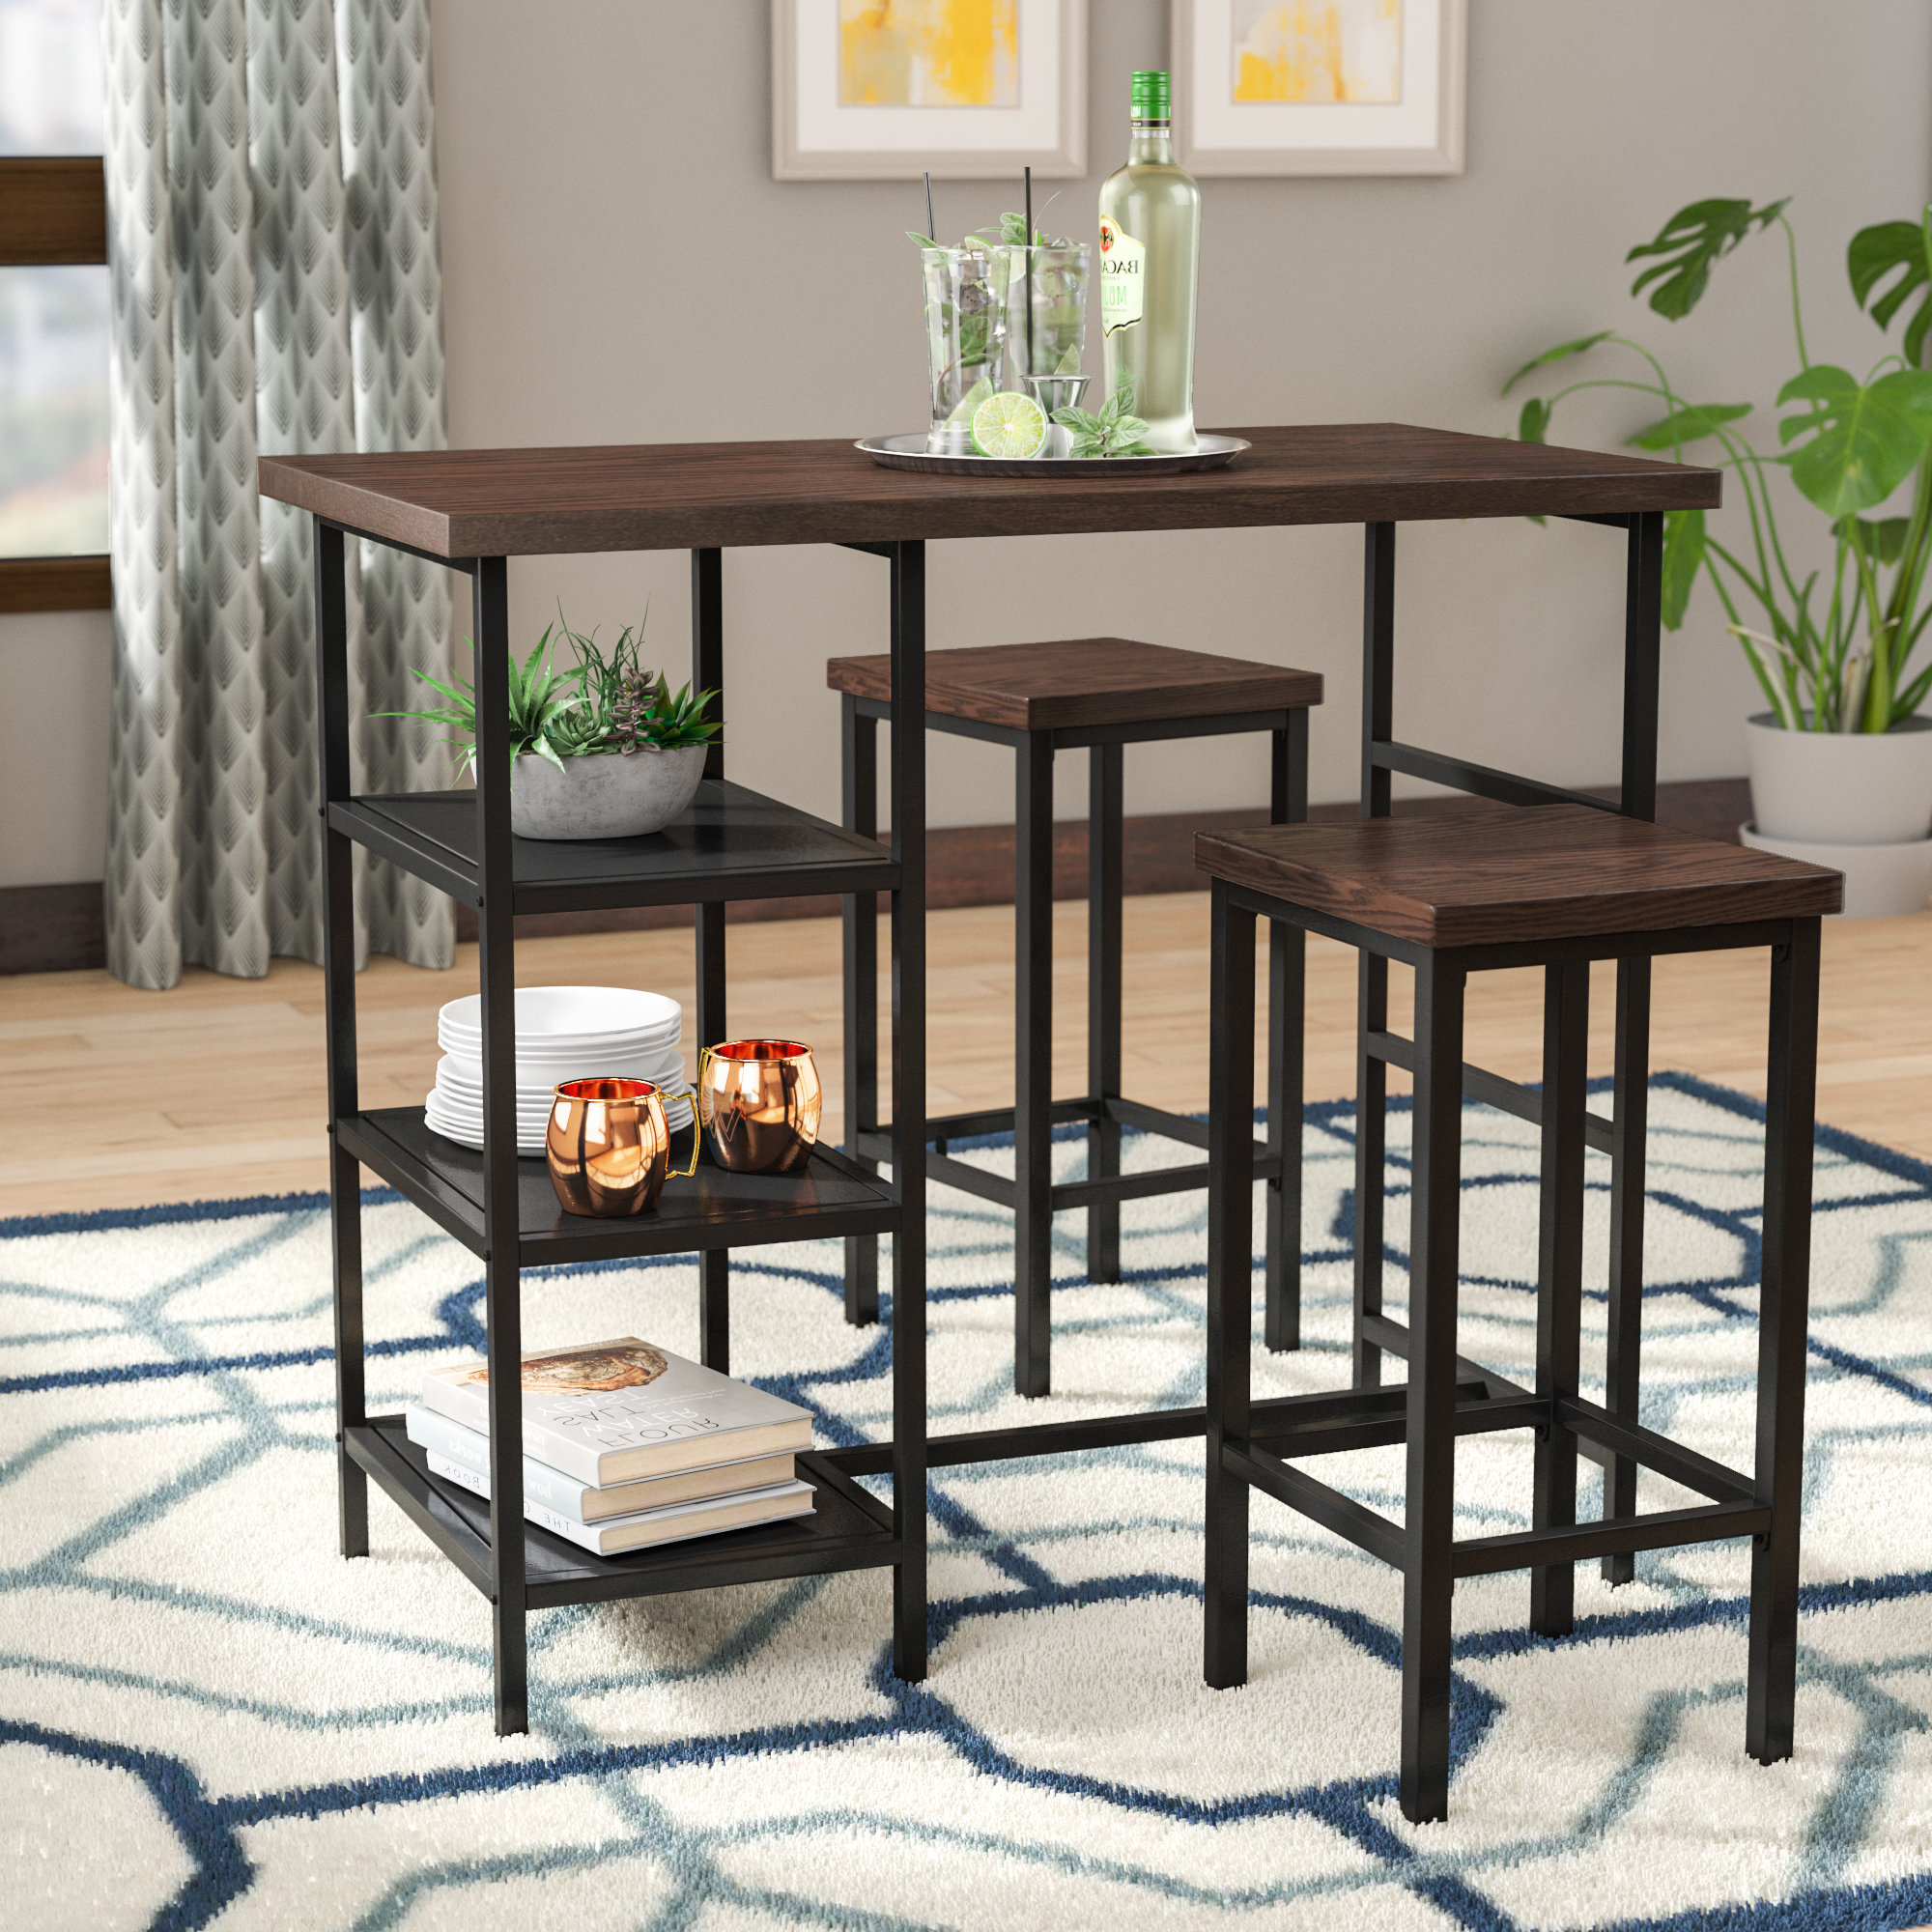 2020 Berrios 3 Piece Counter Height Dining Sets with Ivy Bronx Du Bois 3 Piece Pub Table Set & Reviews